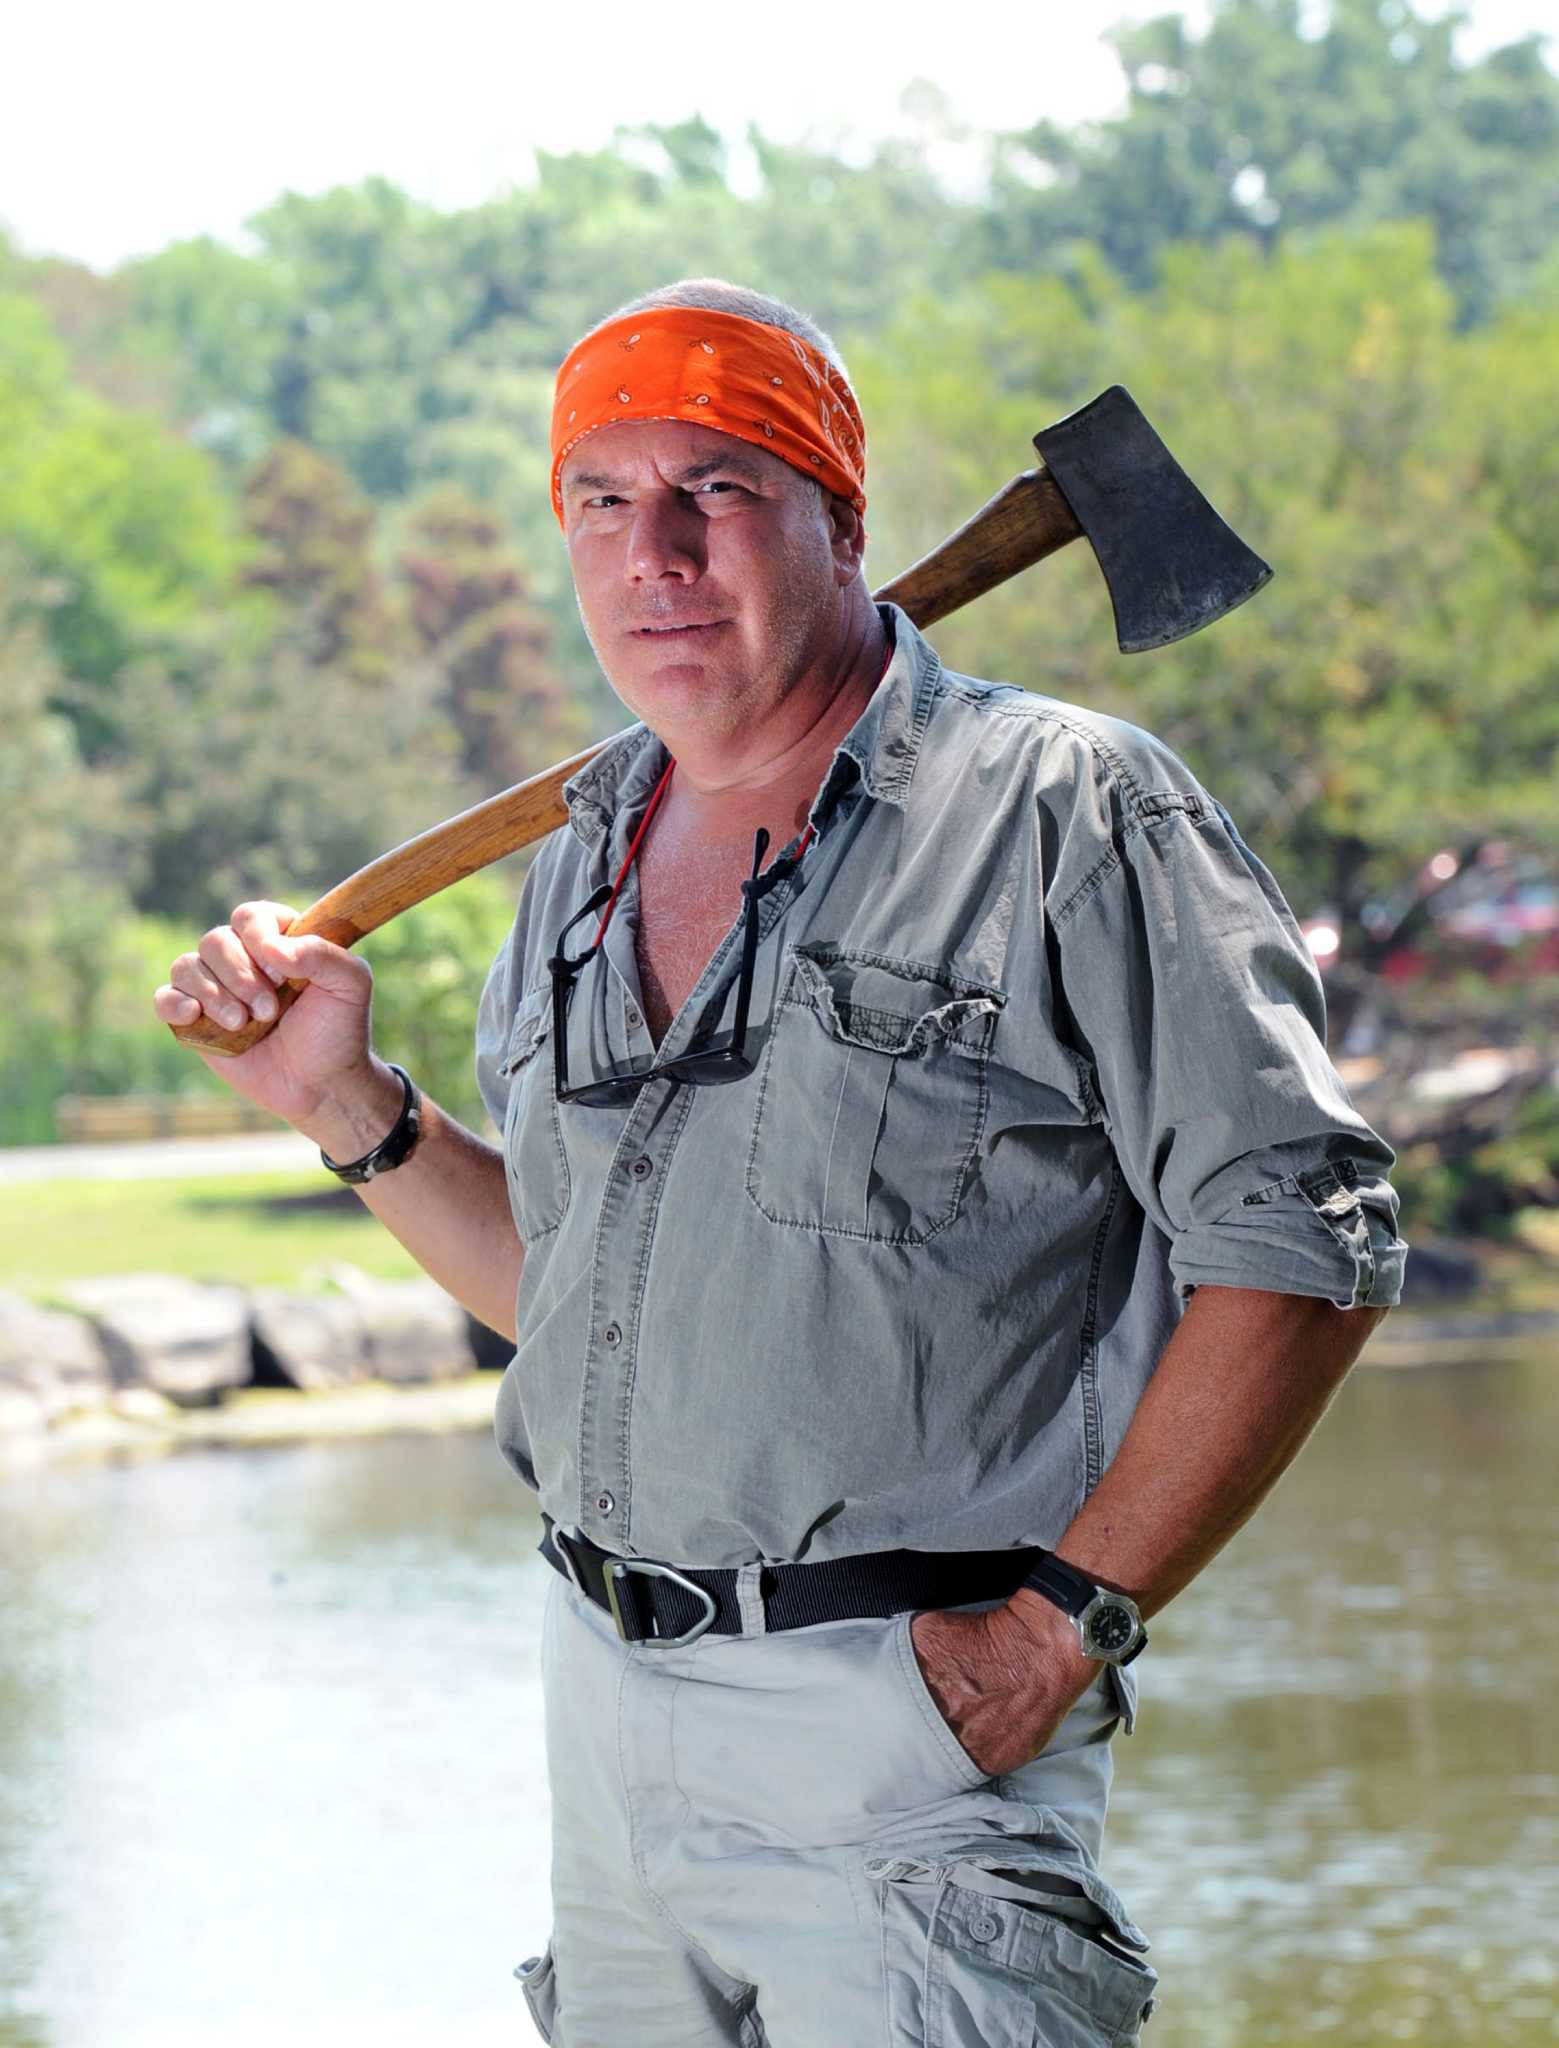 Weekend with survival expert provides lessons for life